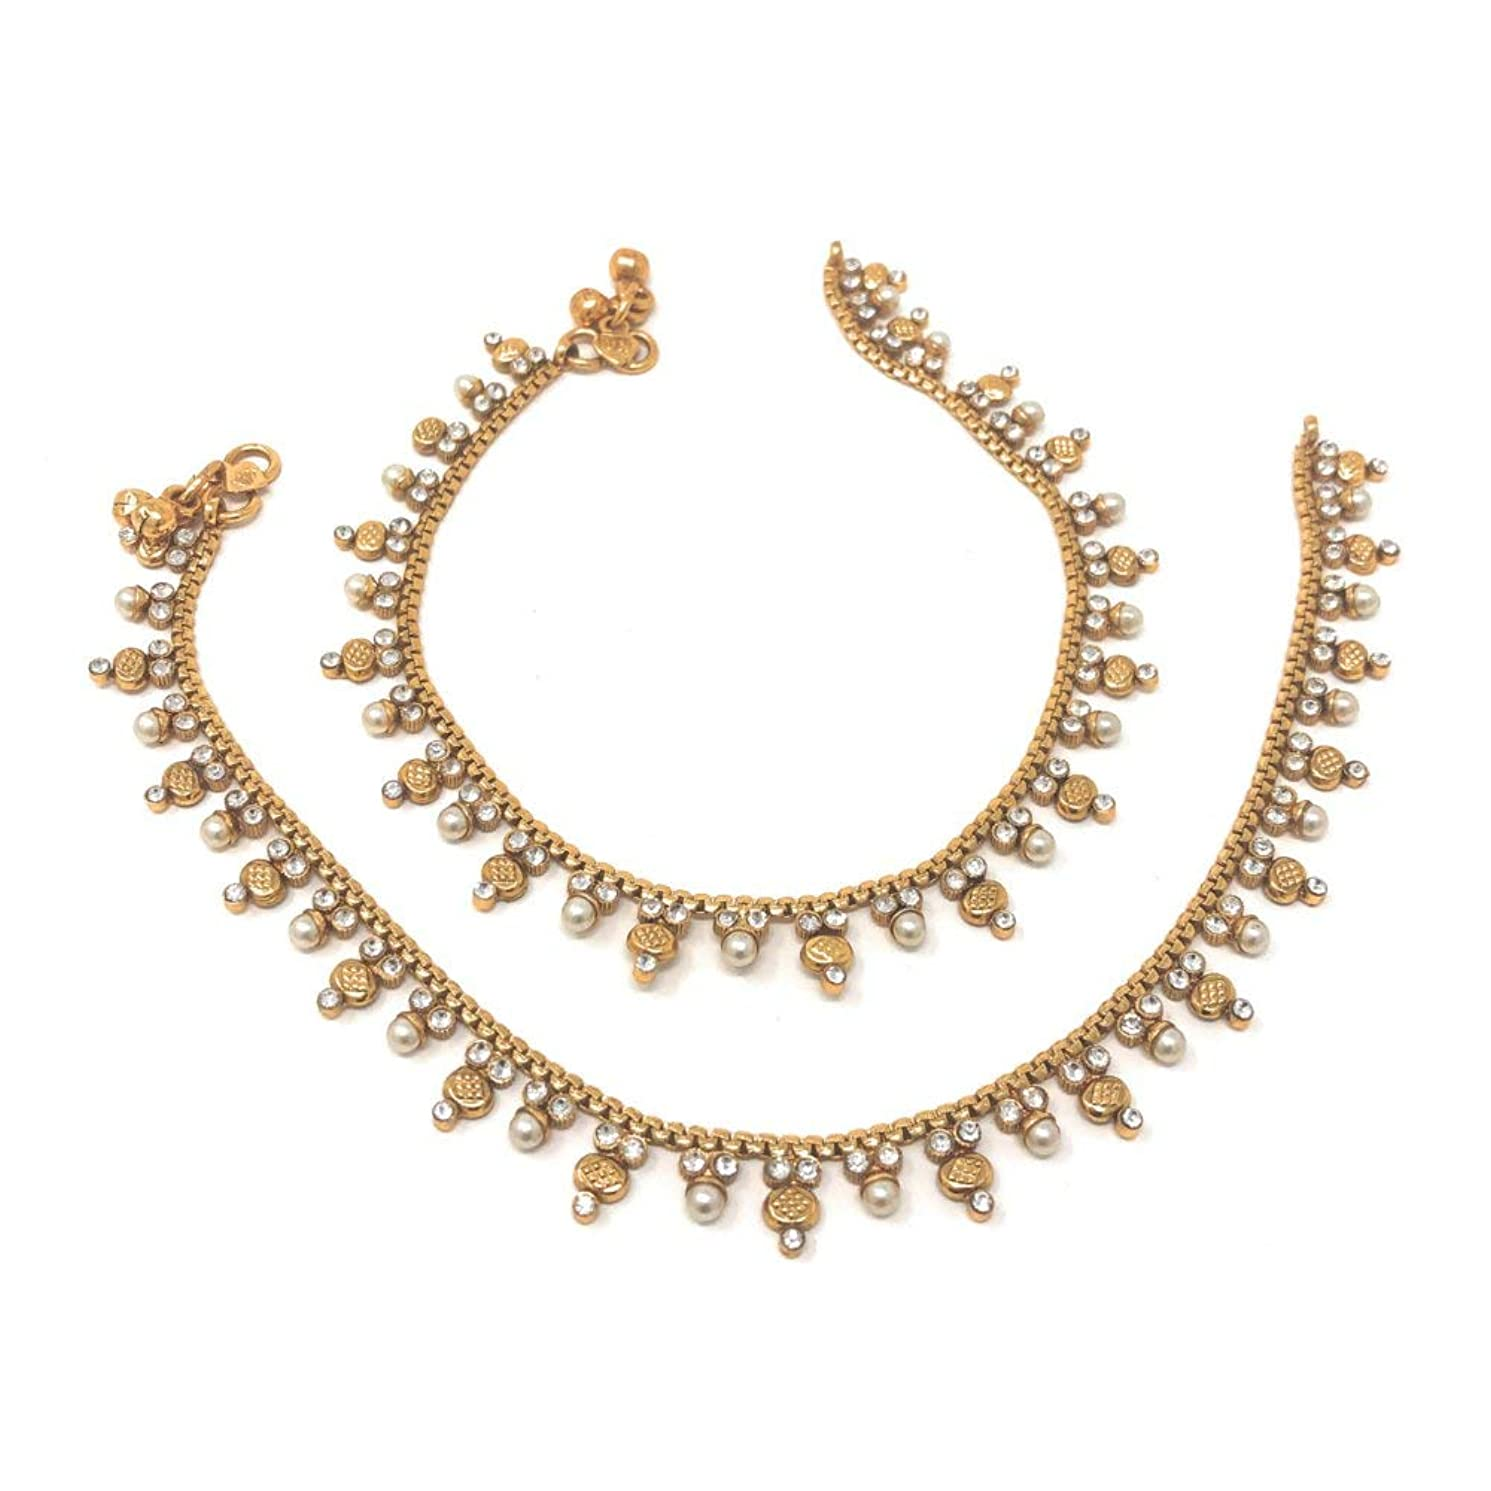 Bridal Indian Pakistani Ethnic Gold Plated Payal Anklet Pair with Soft Bells Tiny Pearls Cubic Zirconia